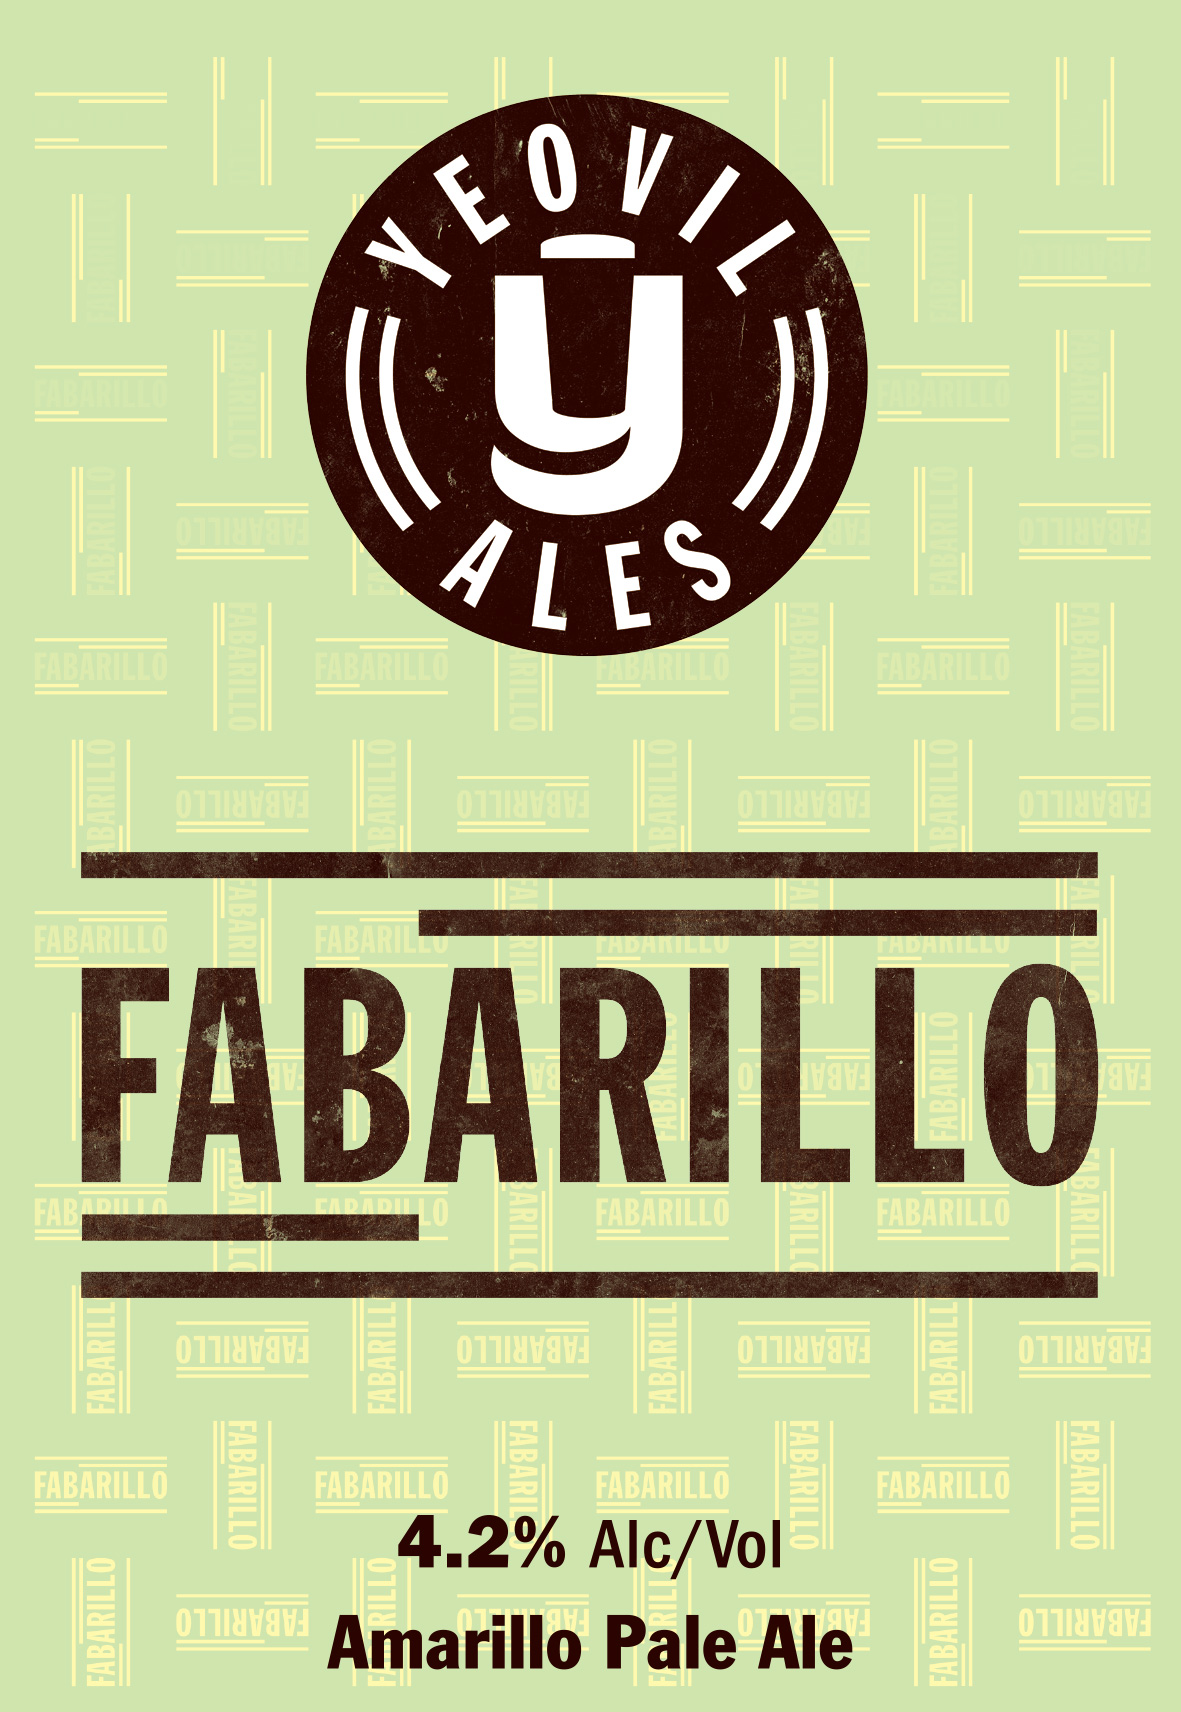 Fabarillo - Yeovil Ales Brewery